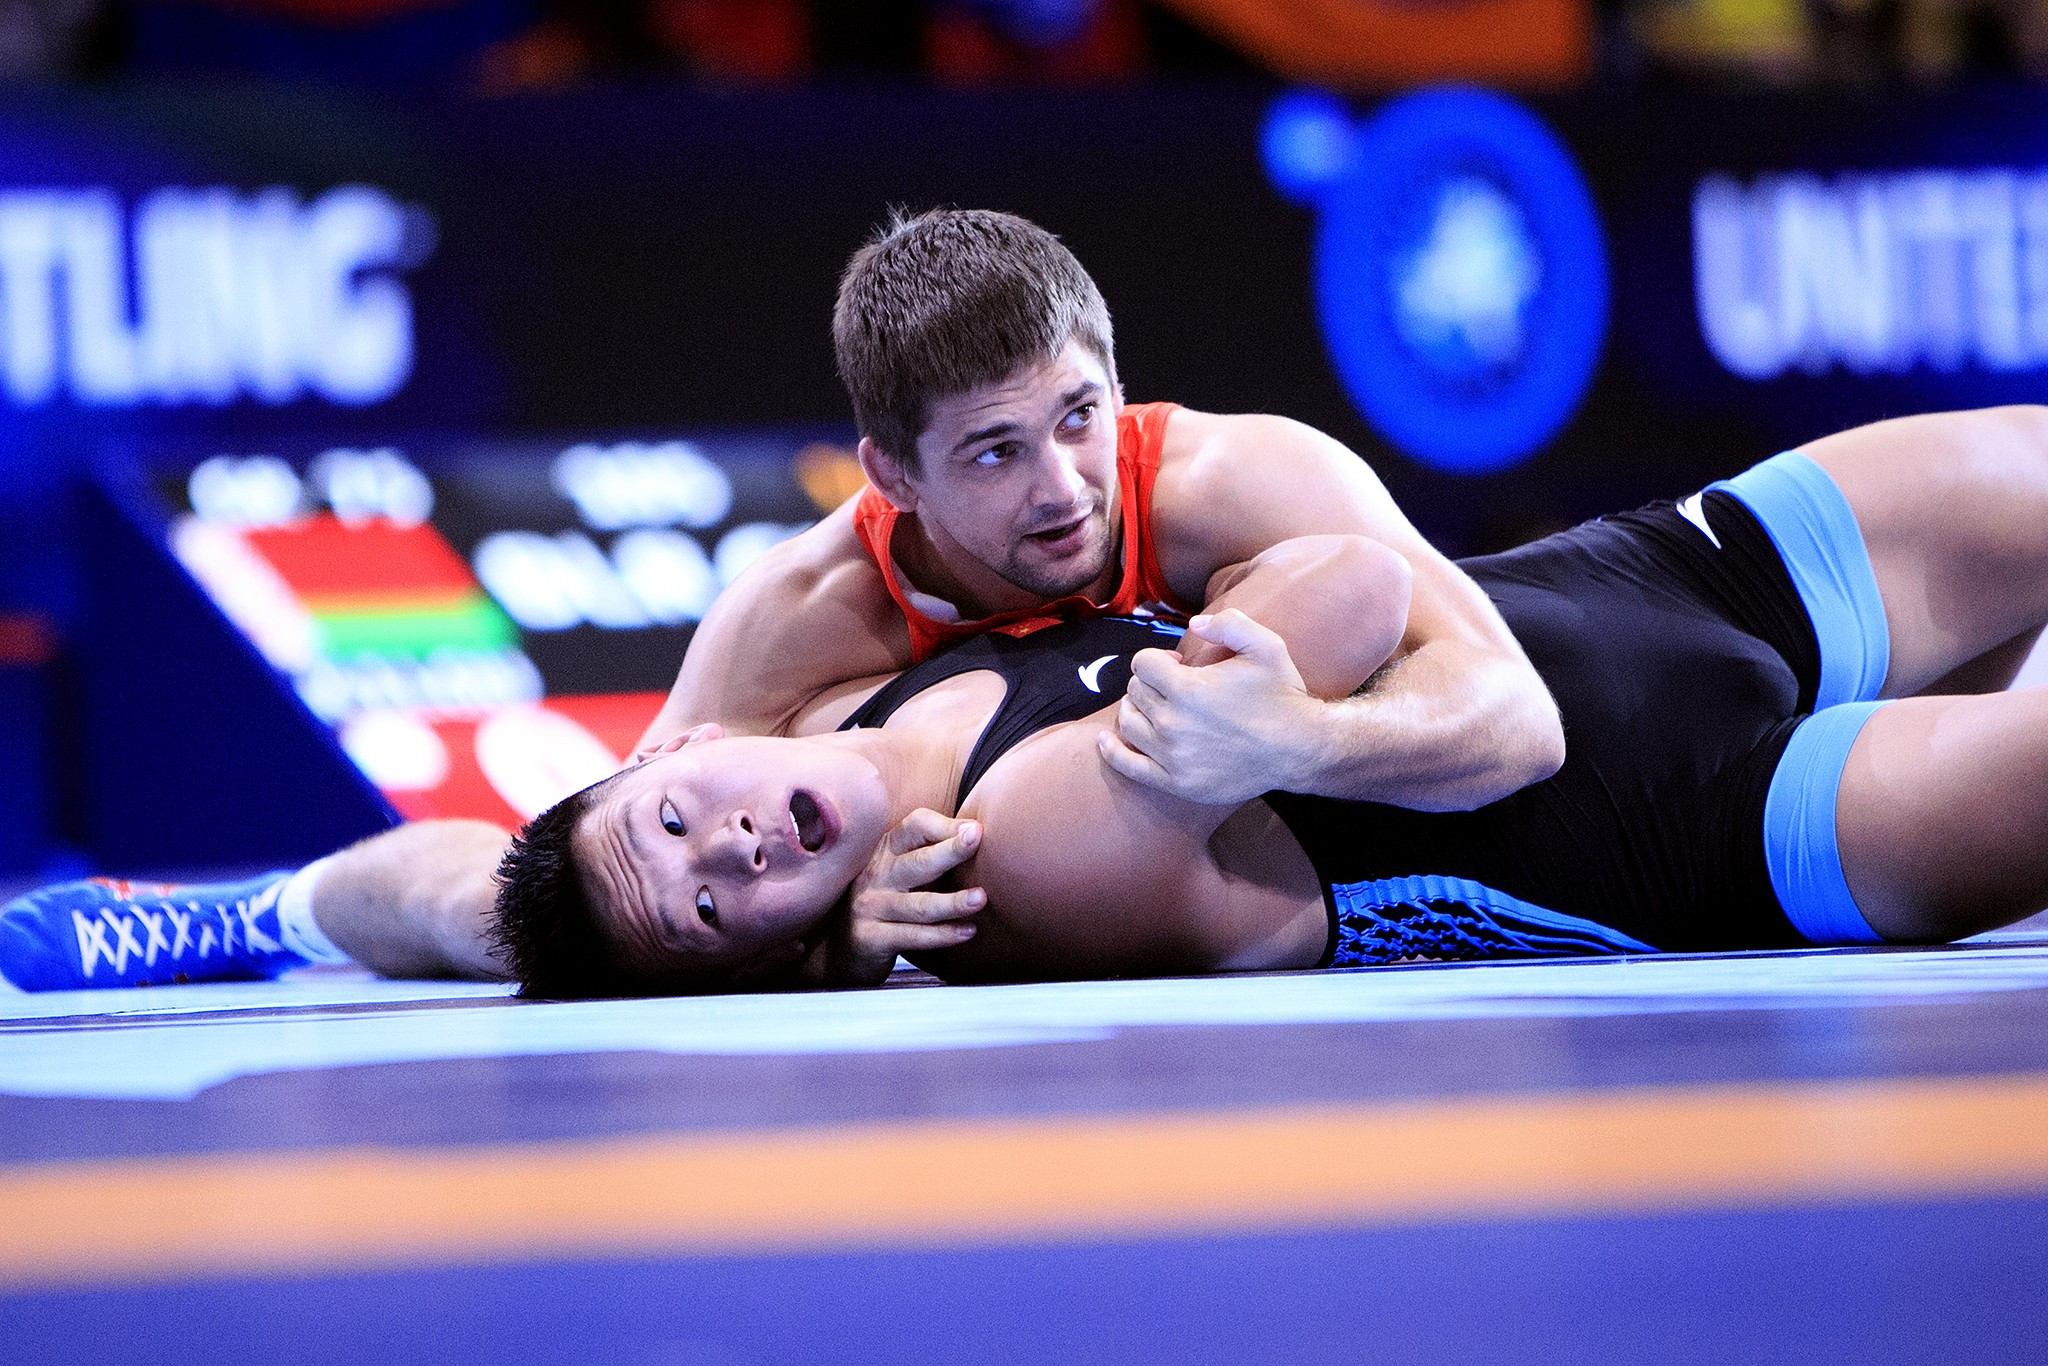 Russian Aleksandr Chekhirkin had to settle for 75kg silver as his country failed to win gold on day one ©UWW